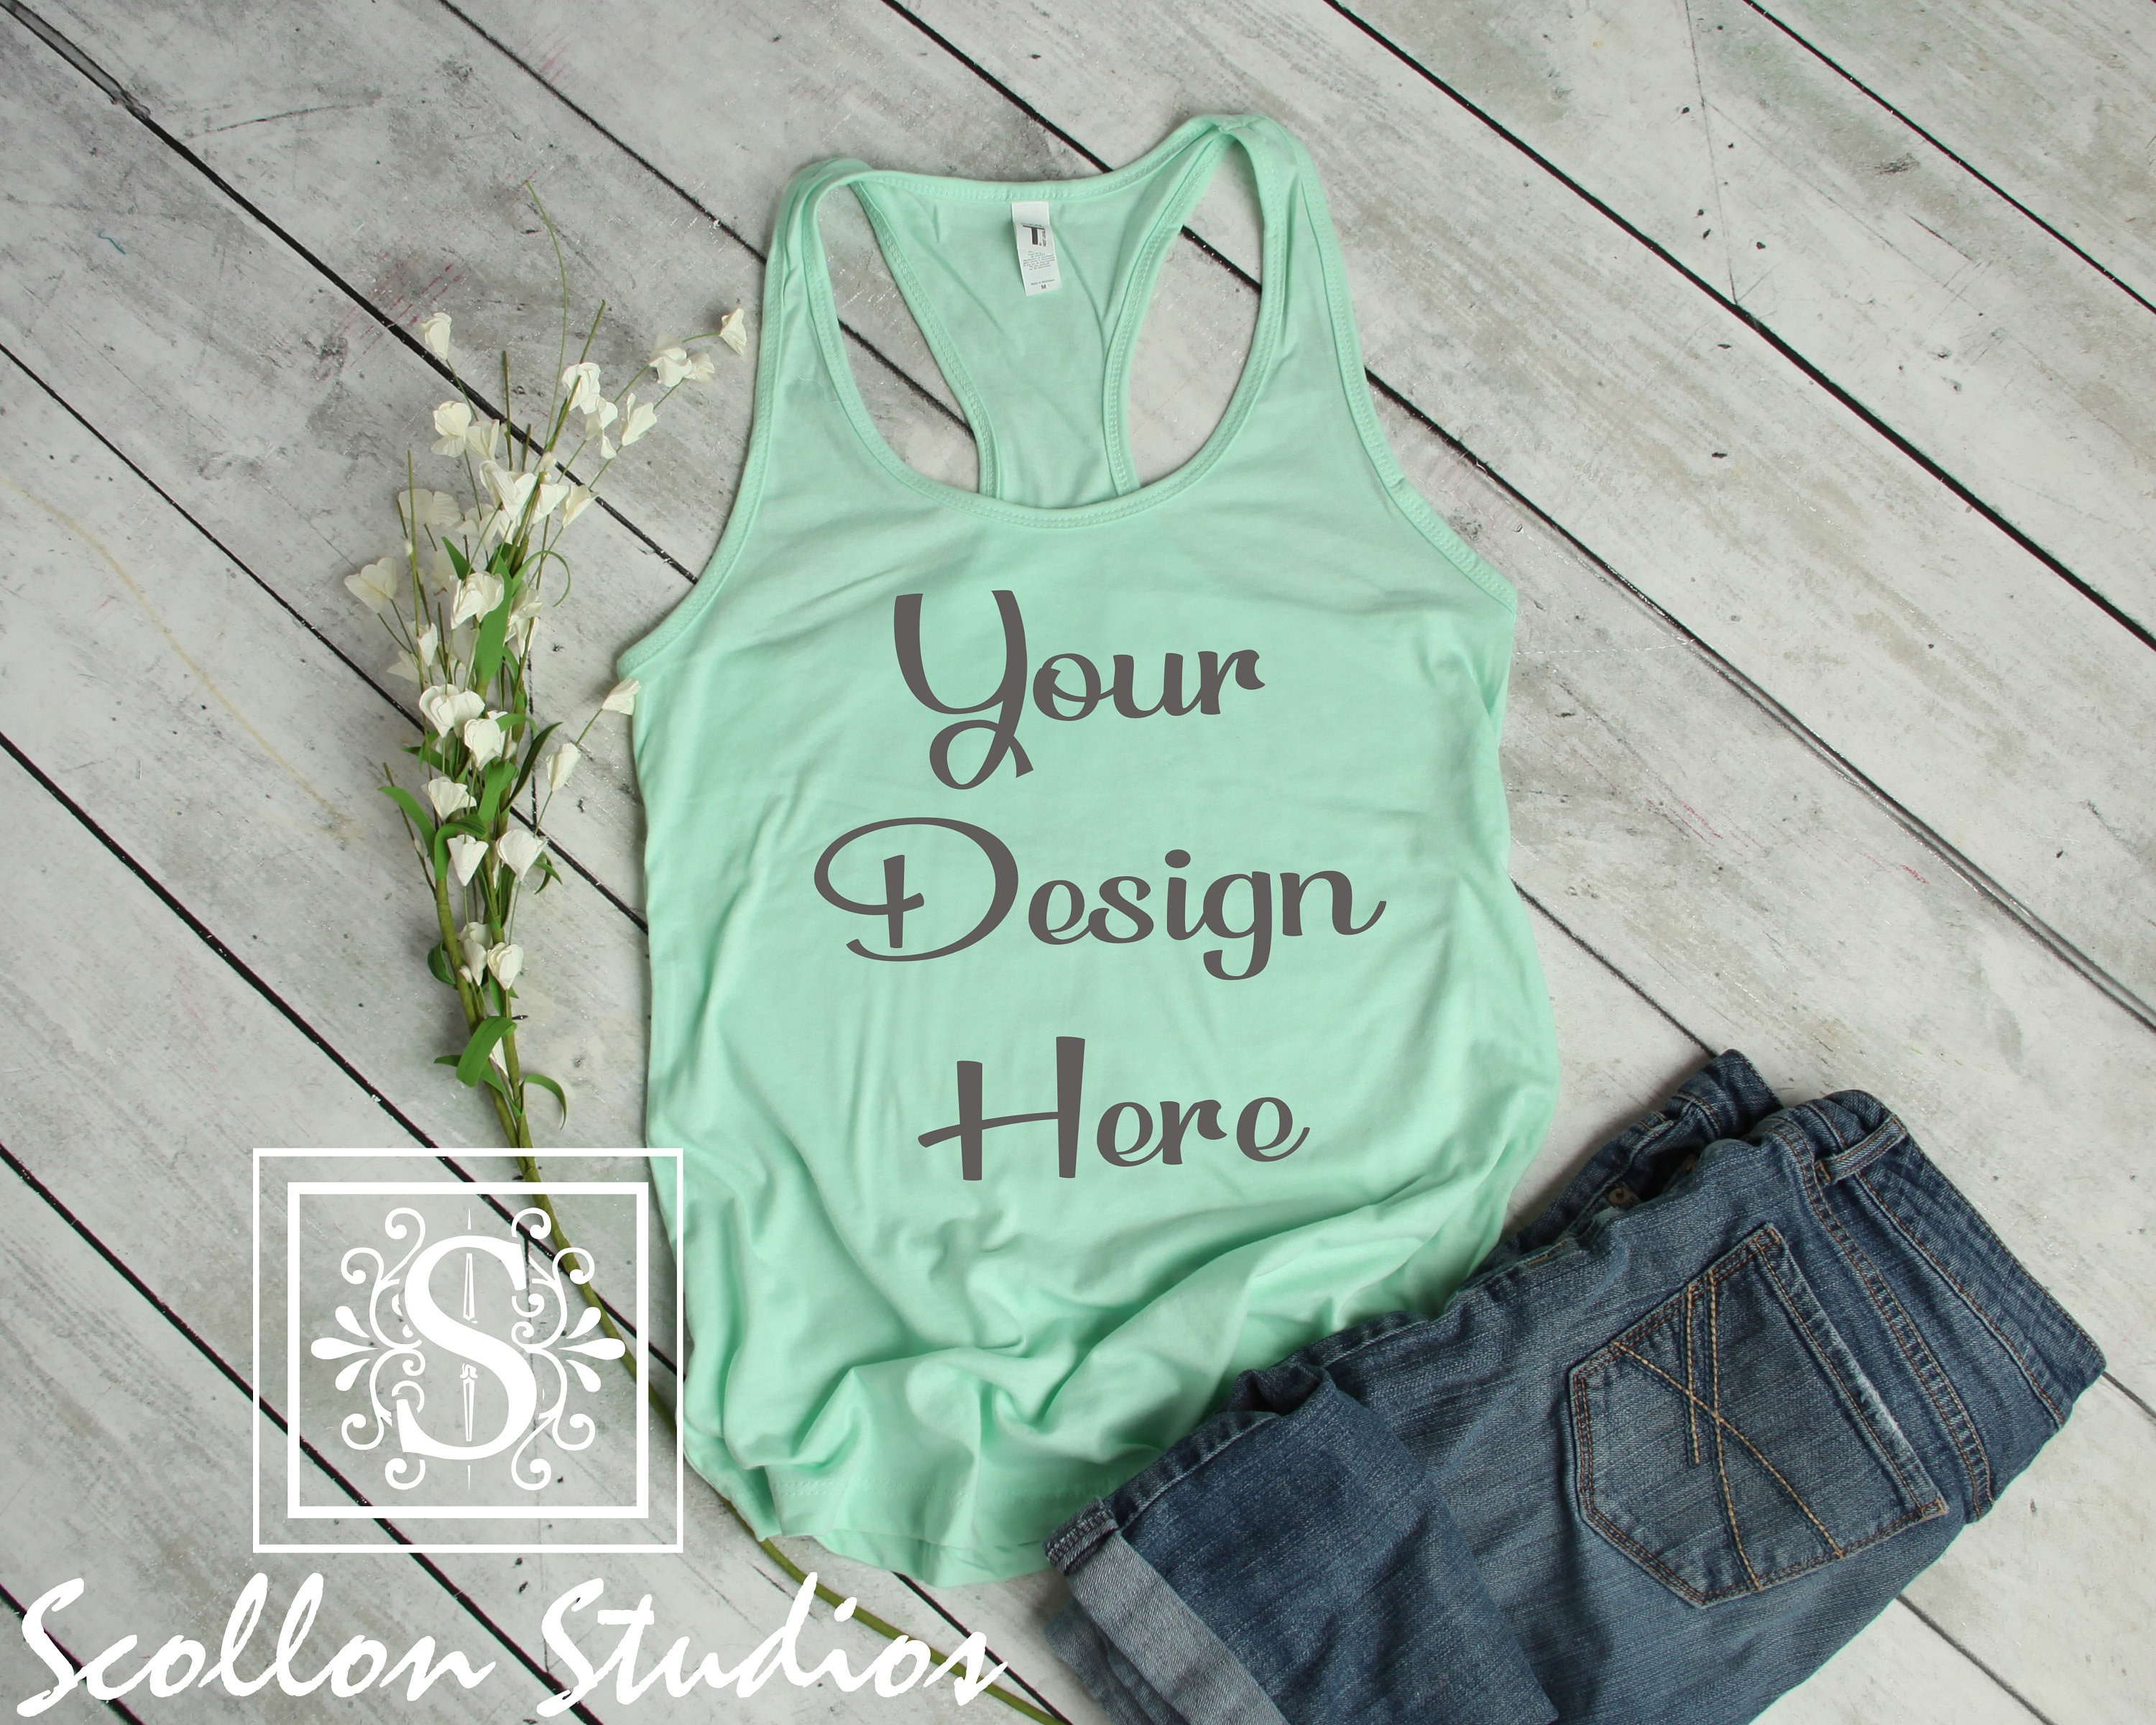 0be02aed93 Custom Tank Top - Custom Women's Racerback Tanks - Personalized Tanks - Design  your own Tanks - Custom Shirts - Custom Women's Shirts